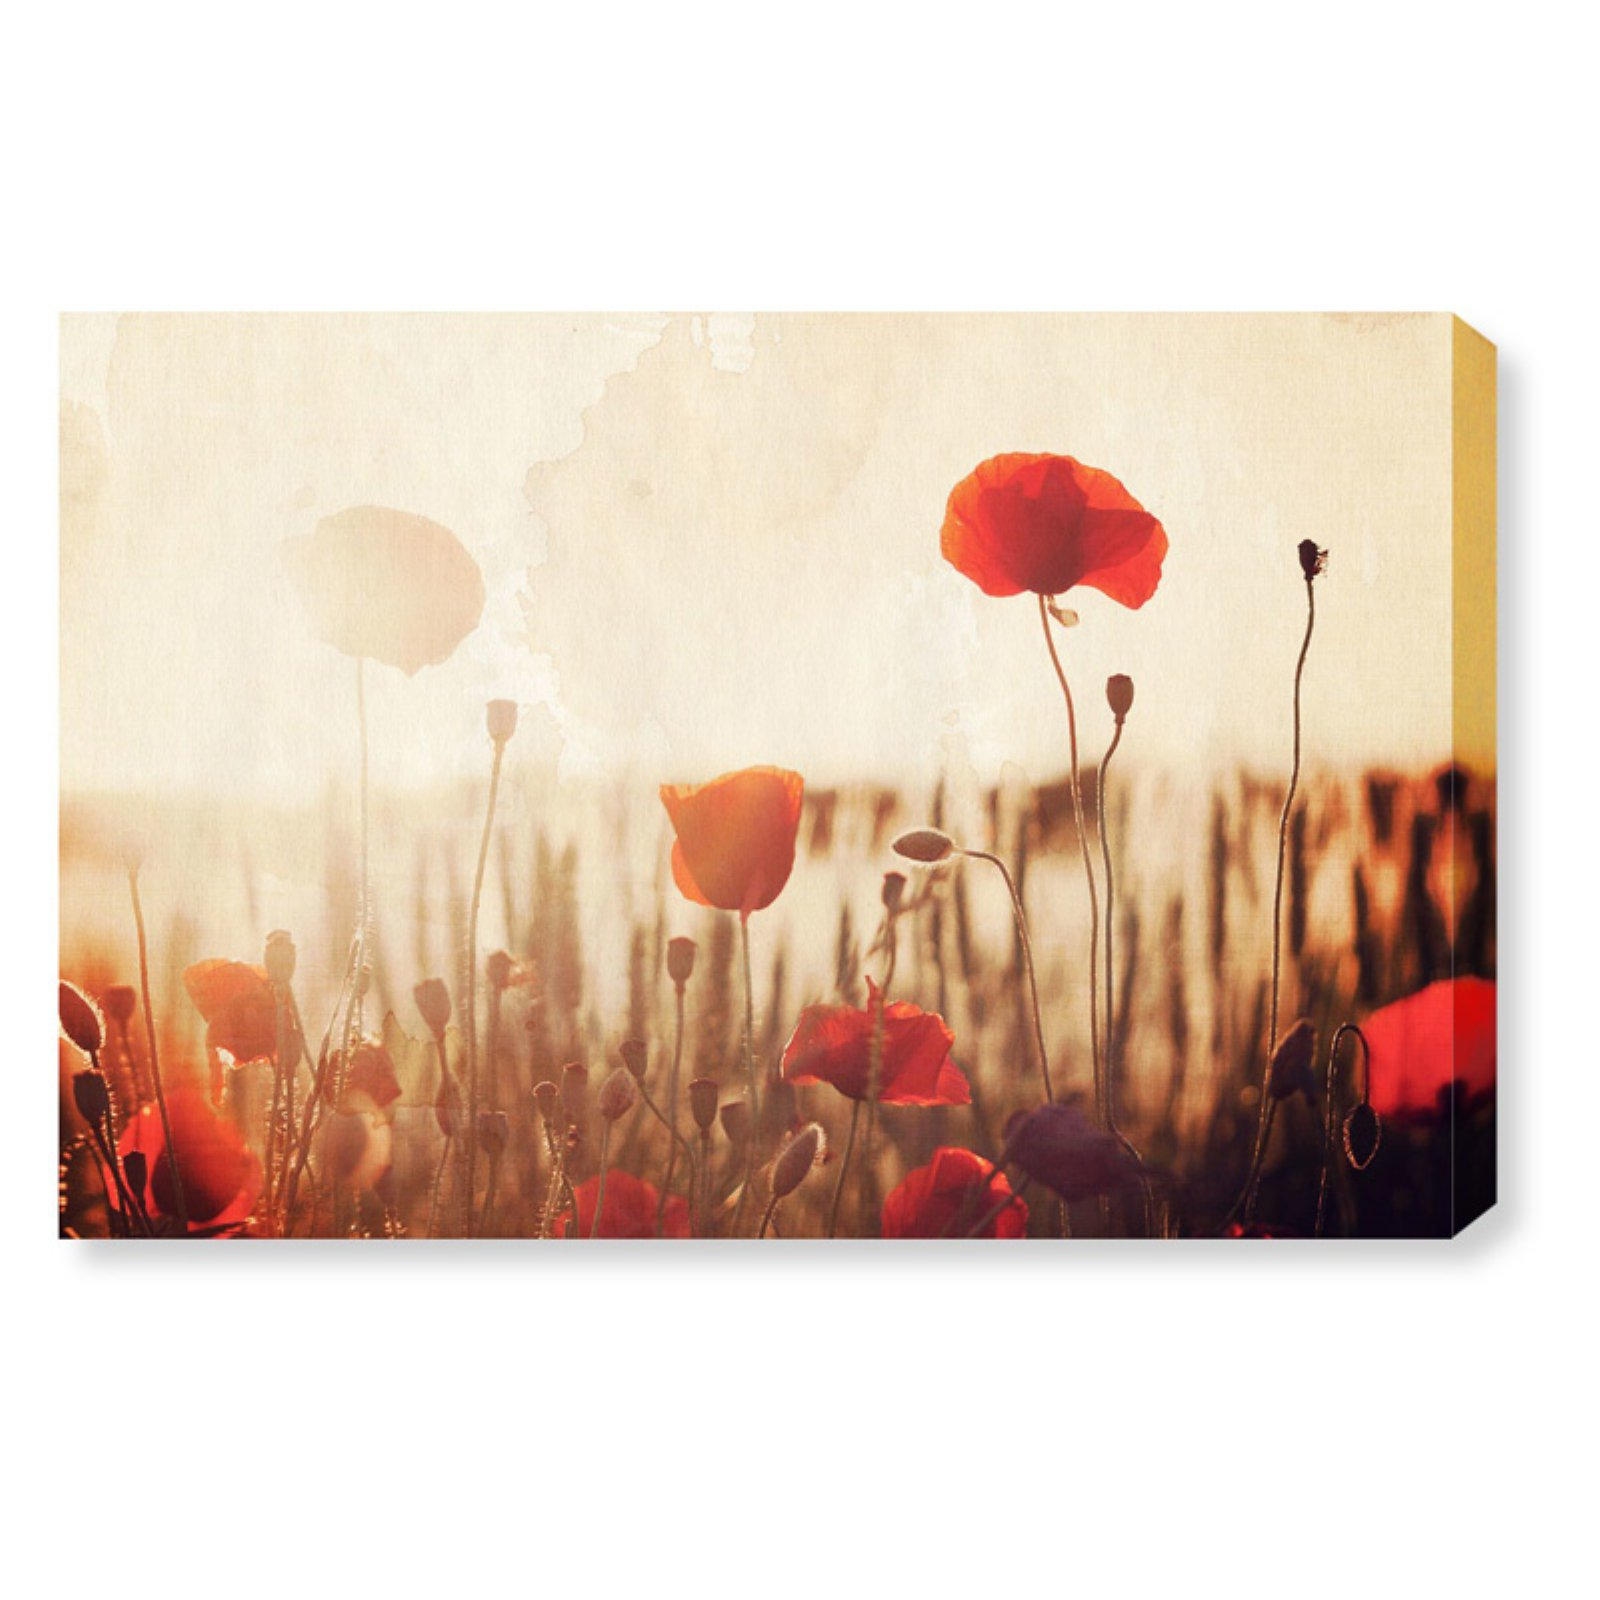 Oliver Gal 'Tulip Field' | Floral and Nature Wall Art - Red Tulips in a Flower Field | Modern Contemporary Canvas Art Print, 30x20 inch